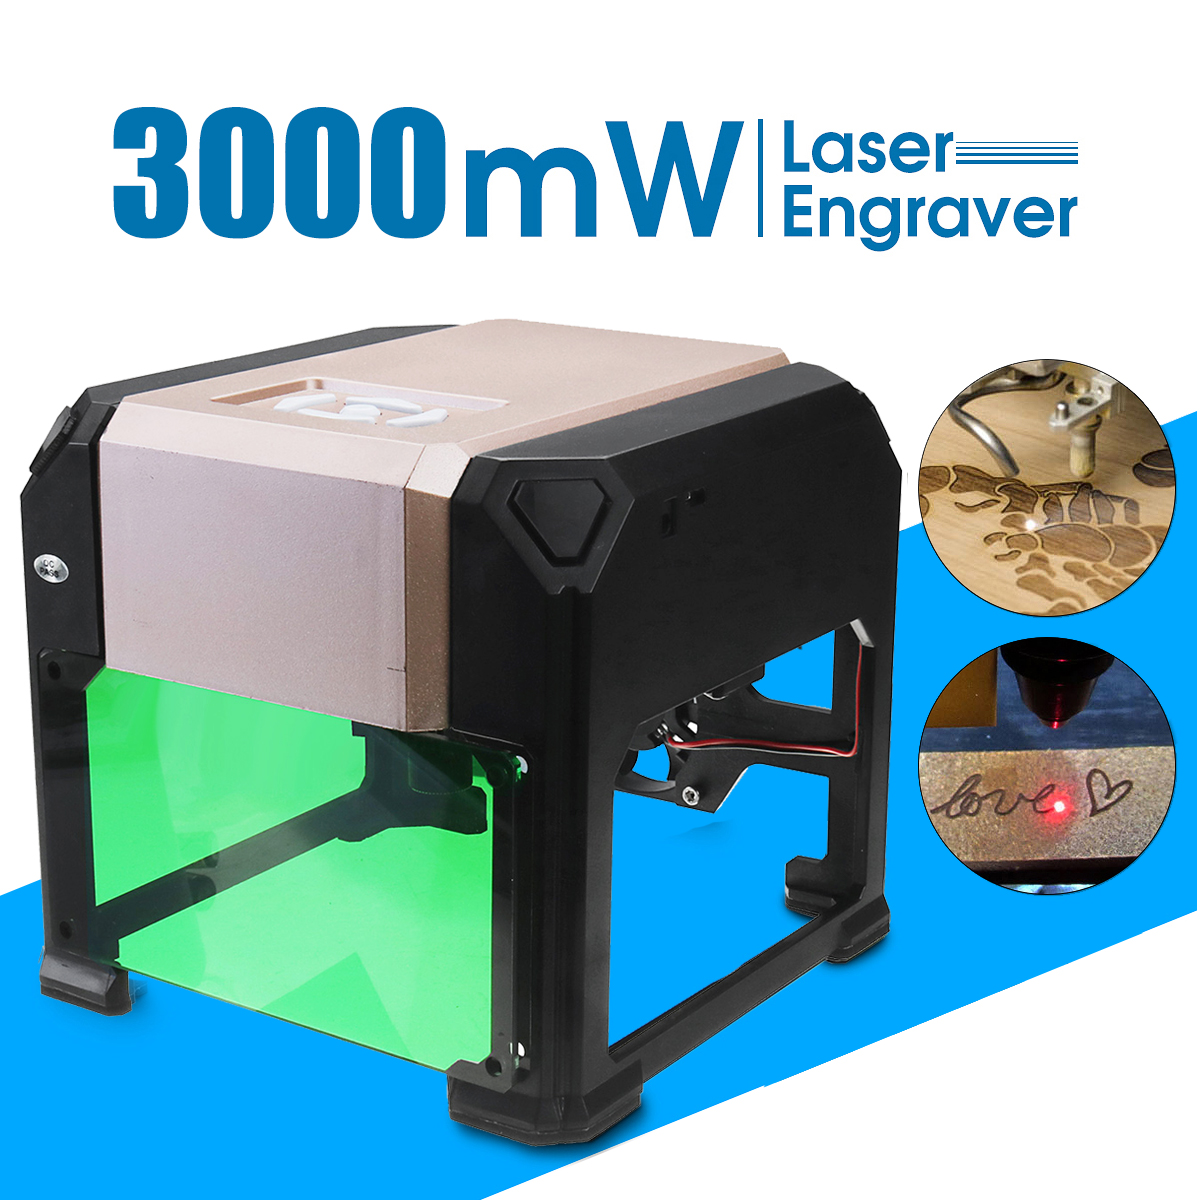 все цены на 2000/3000 mW Laser Engraver DIY Logo Mark Printer Cutter Laser Engraving Carving Machine for Home Use 80x80mm Engraving Range онлайн